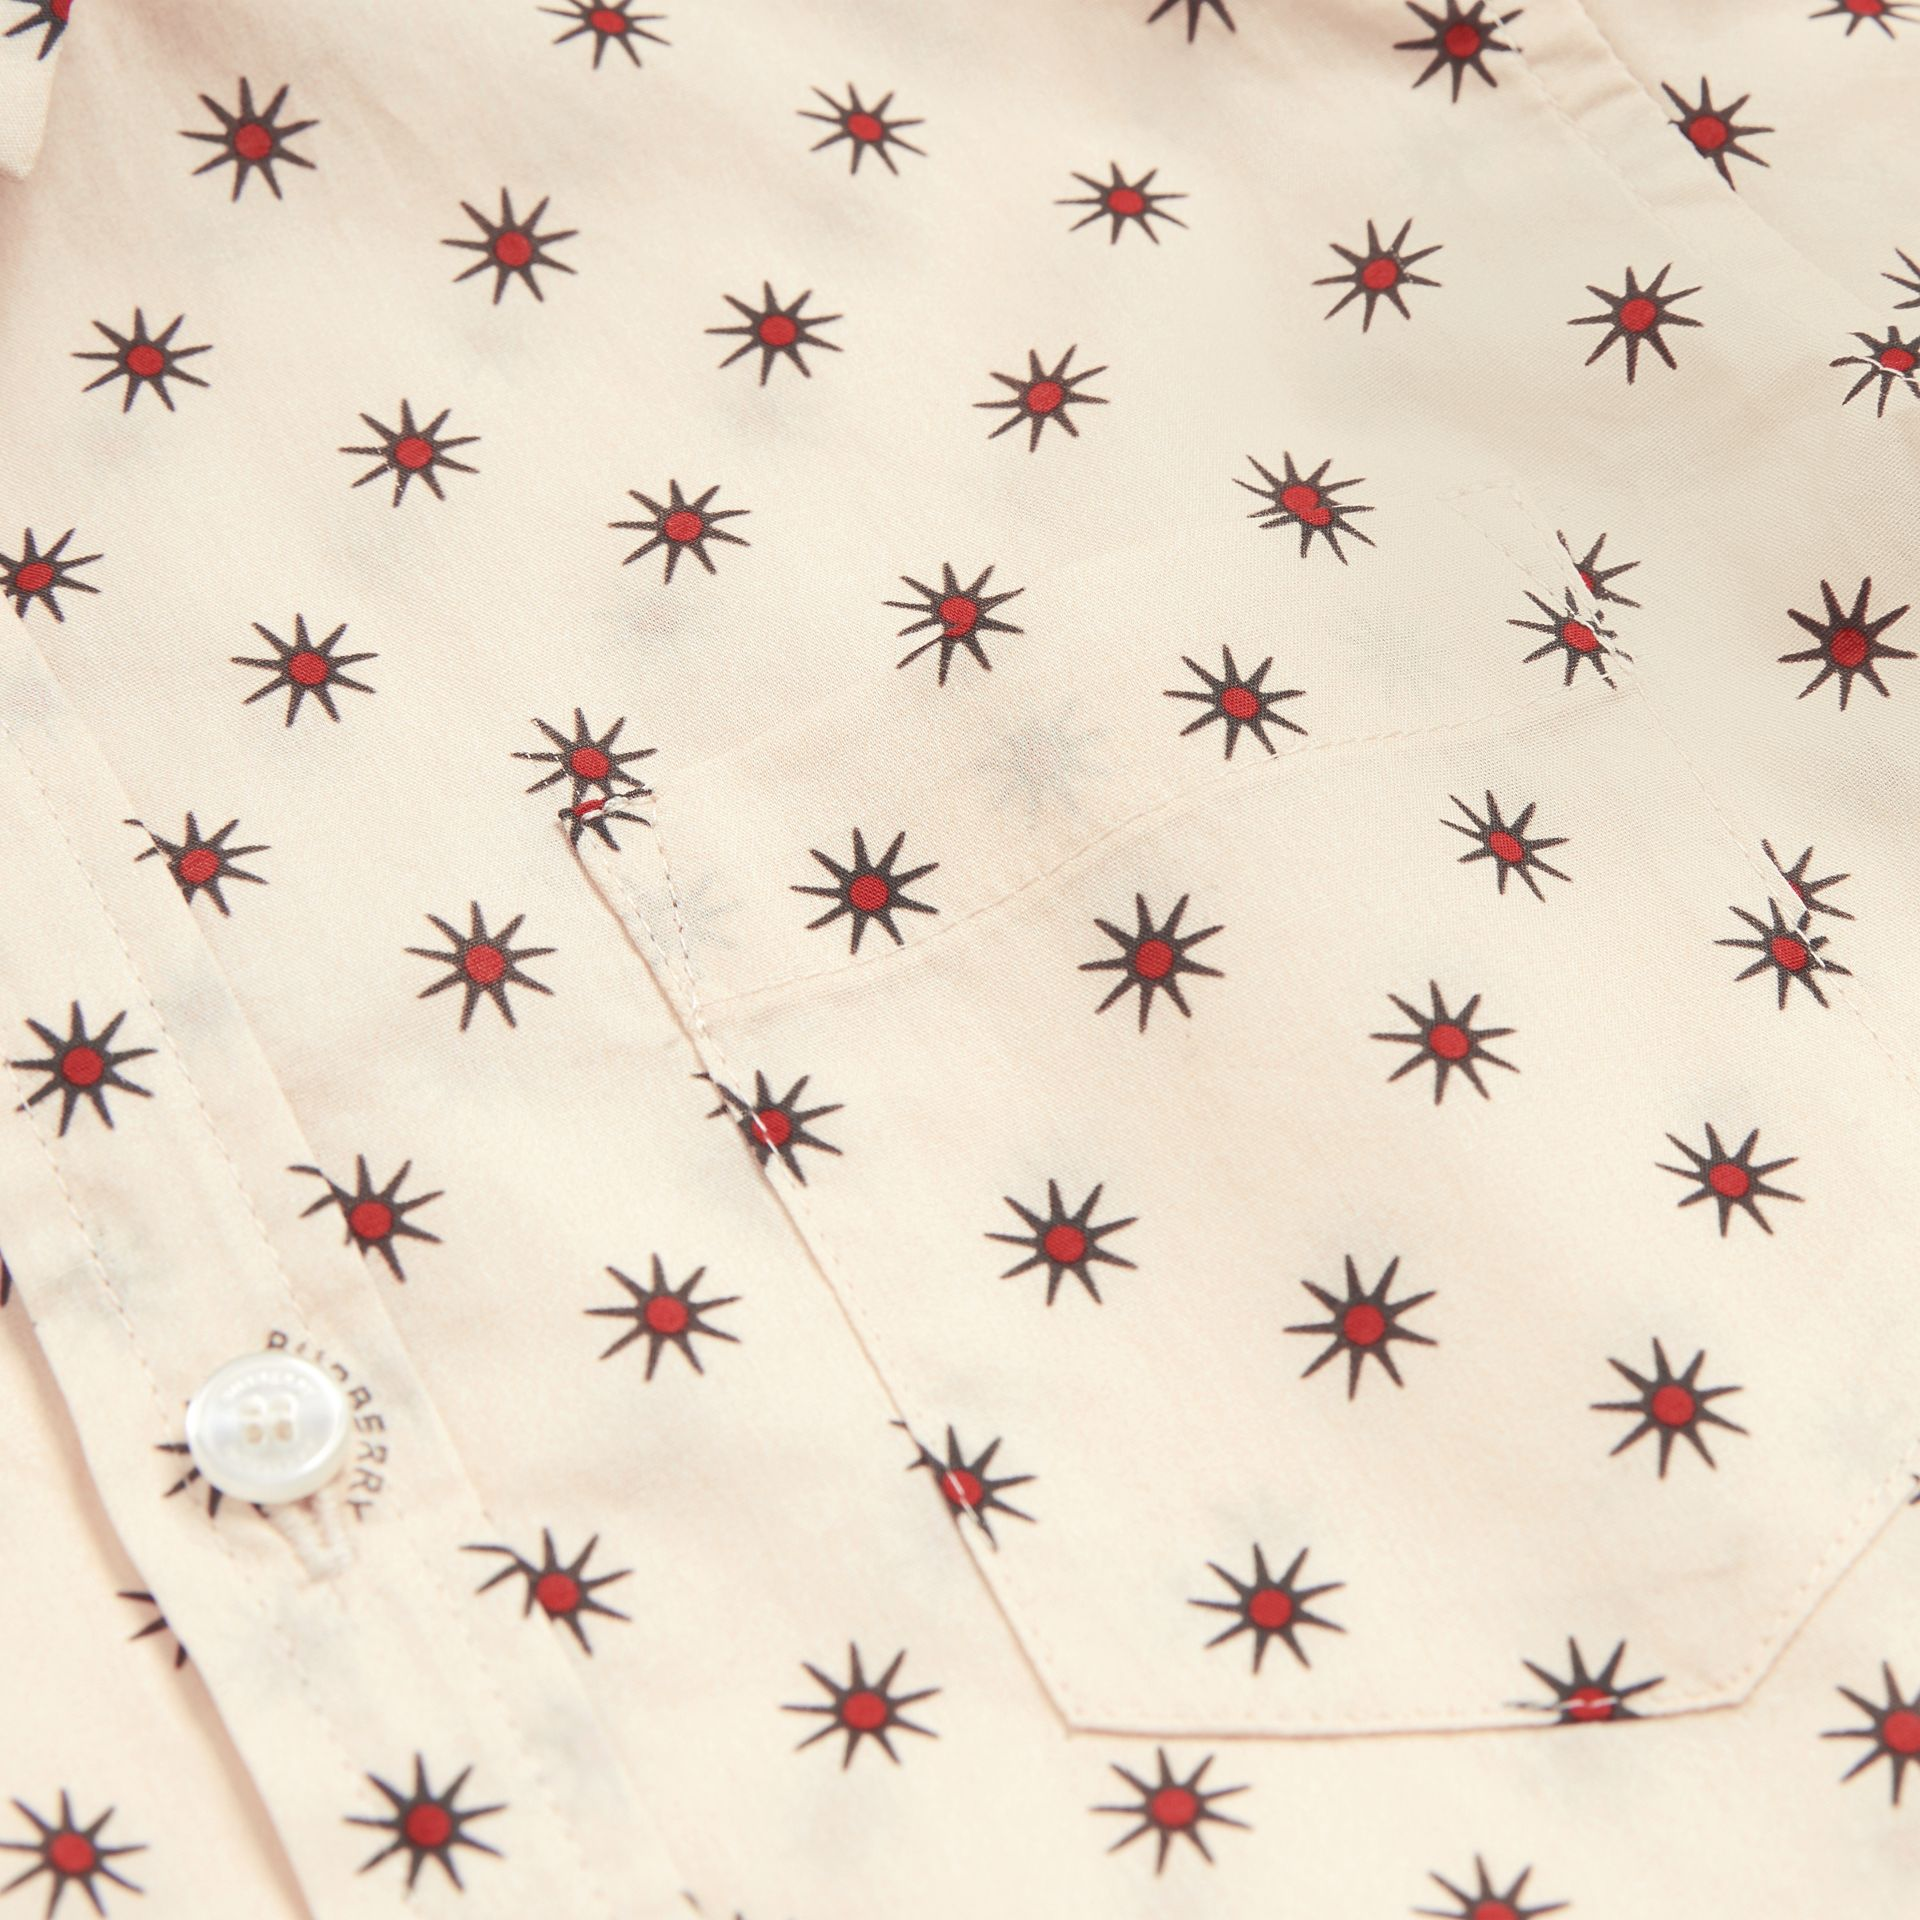 Star Print Cotton Shirt in Military Red | Burberry United Kingdom - gallery image 1